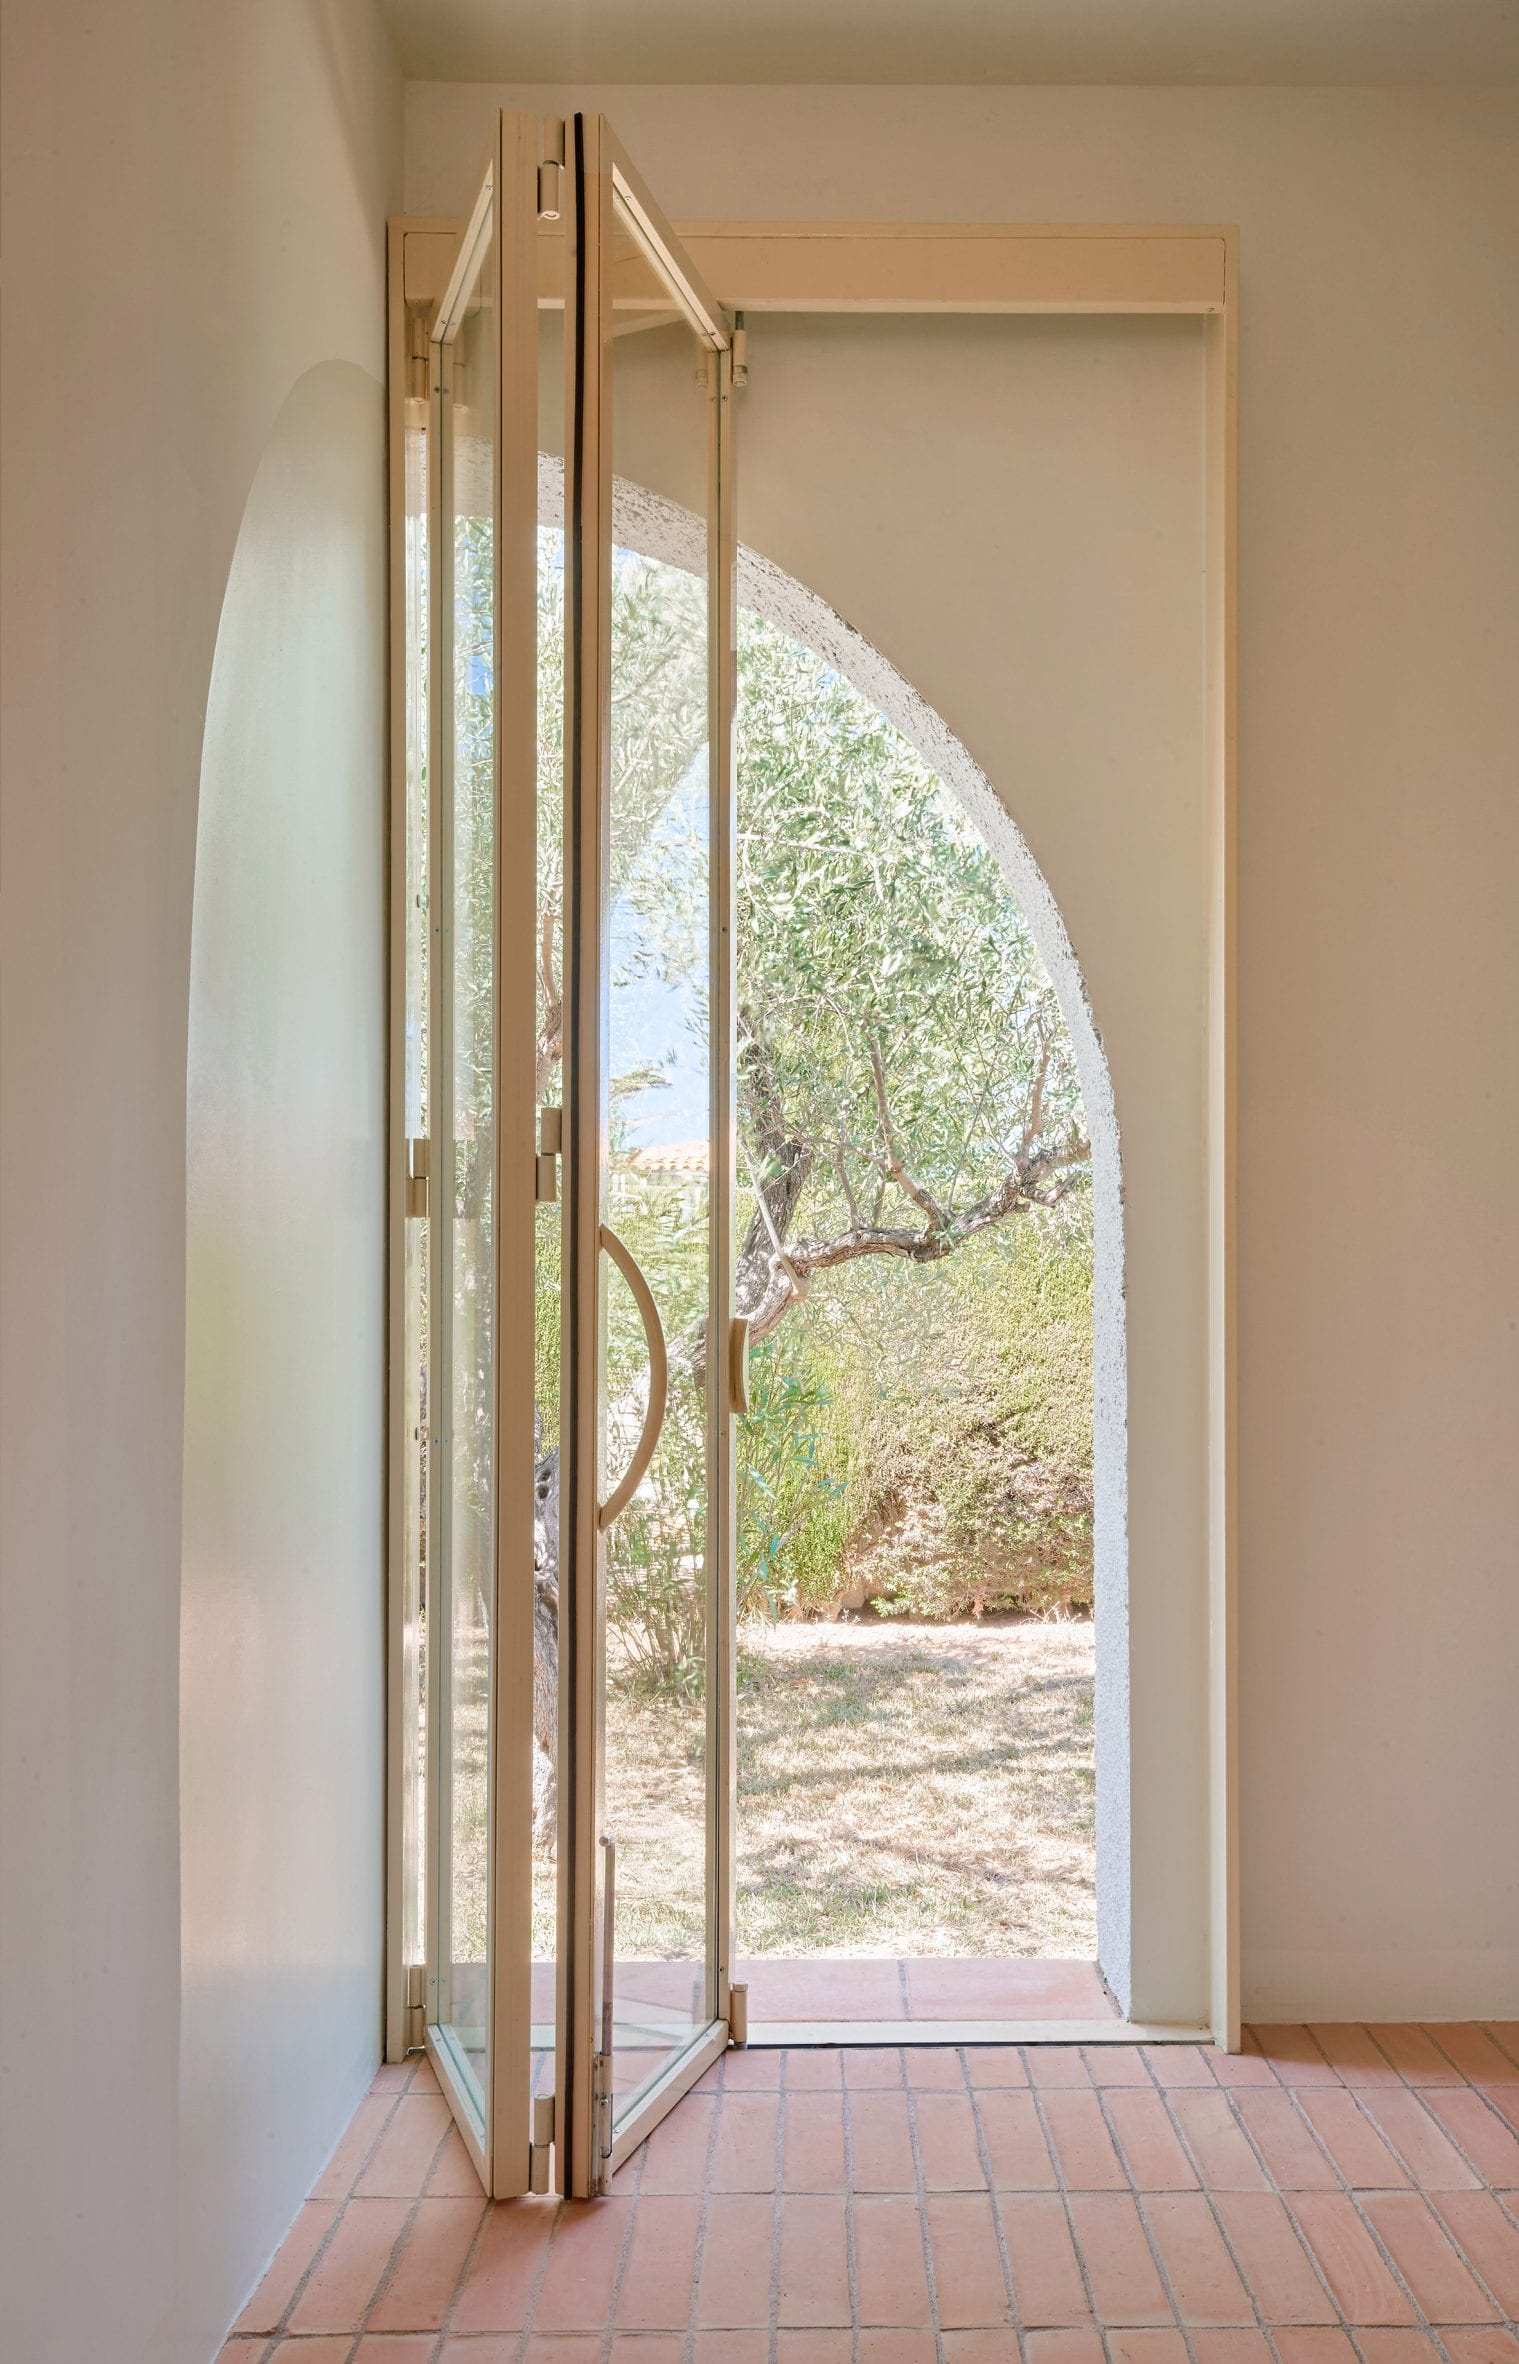 A glass door covers an archway